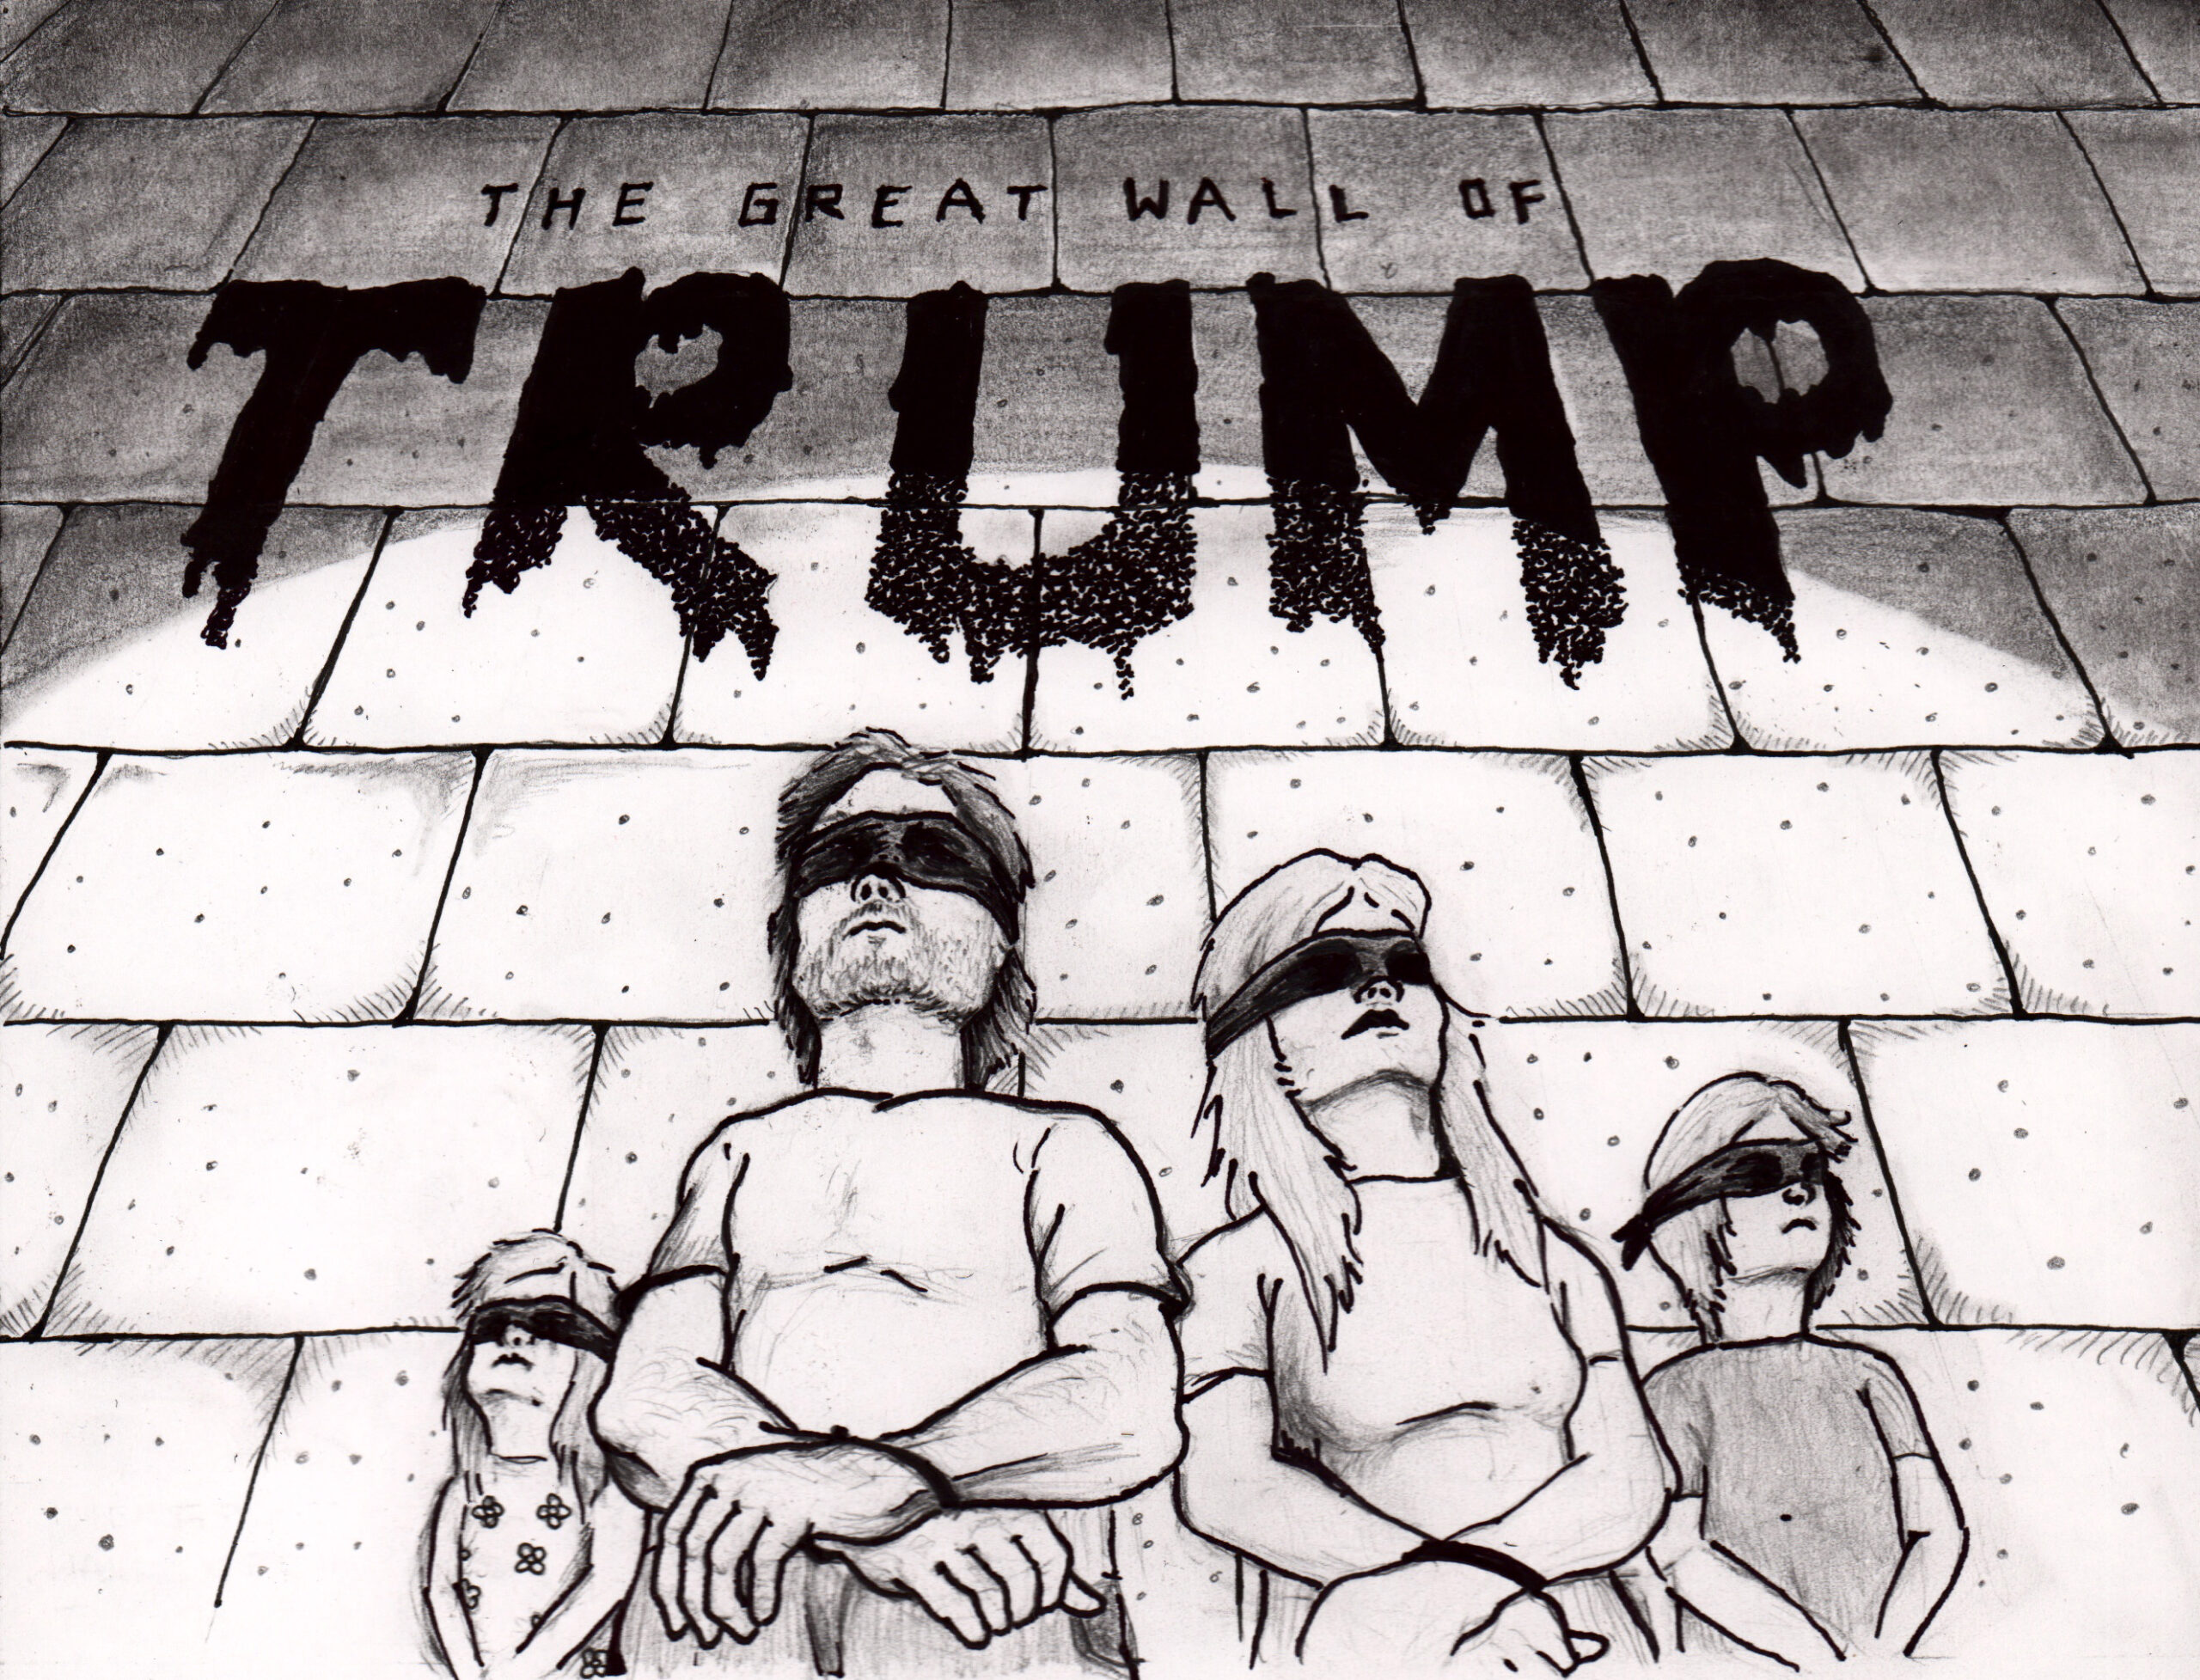 An American family stands against a wall blind folded and their hands tied. The wall is illuminated with a spot light and the word TRUMP is written above them in a dripping substance.